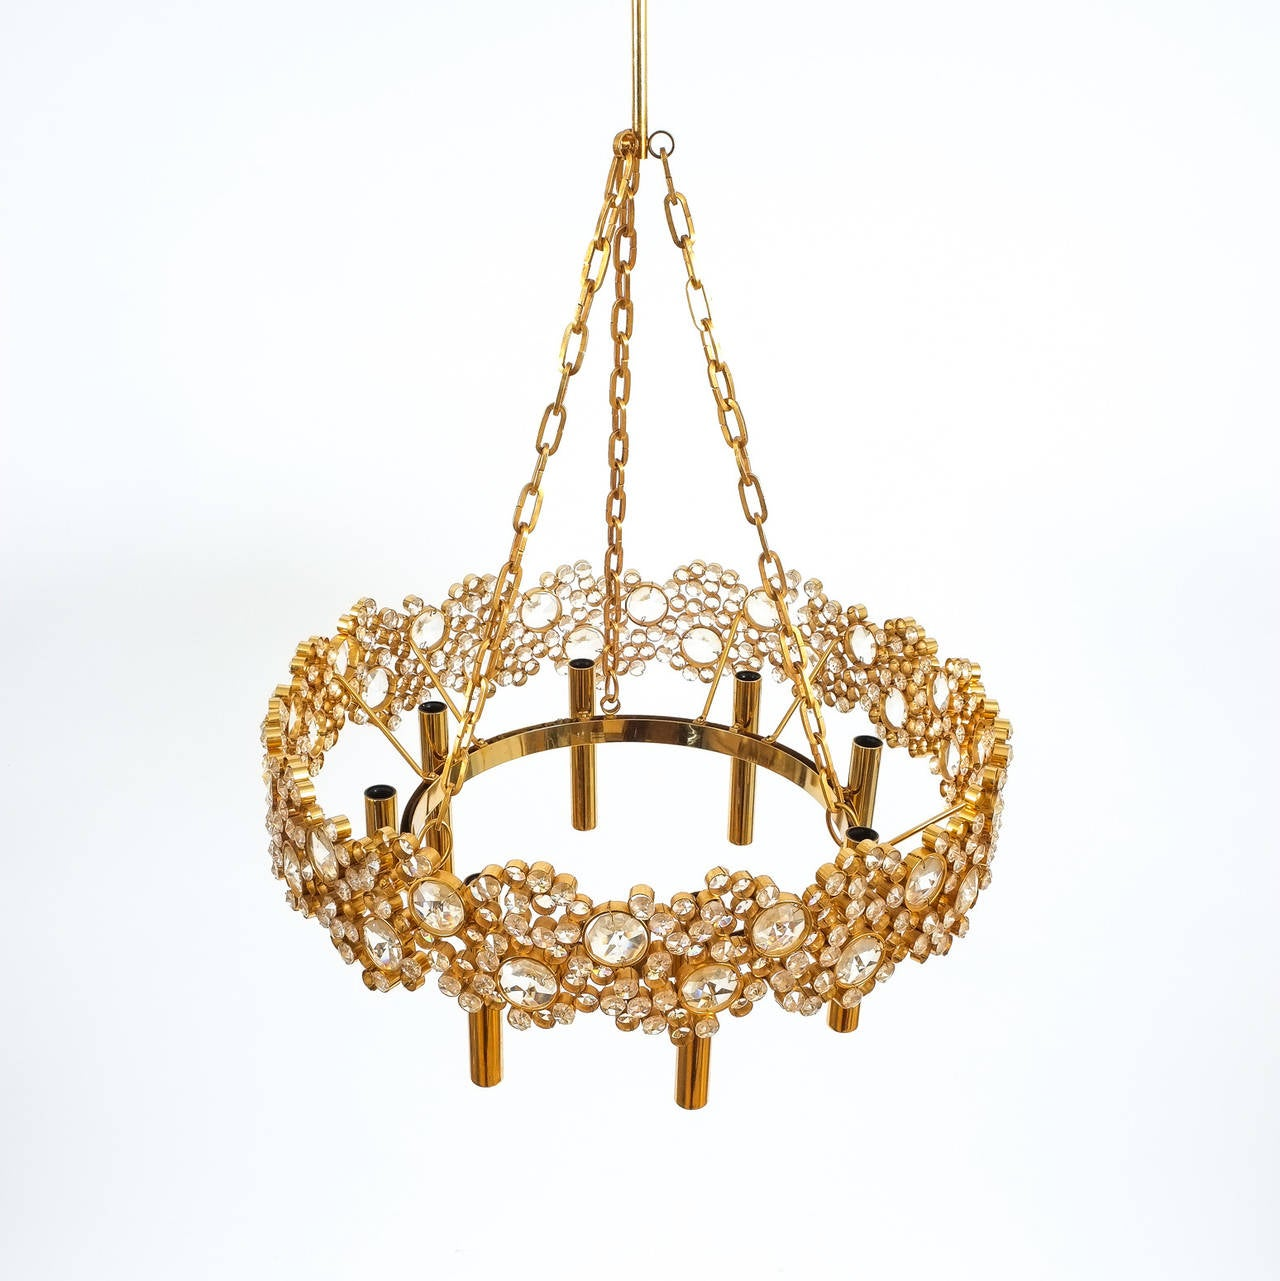 Mid-Century Modern Large Gilt Brass and Glass Chandelier Lamp, Palwa circa 1960 For Sale